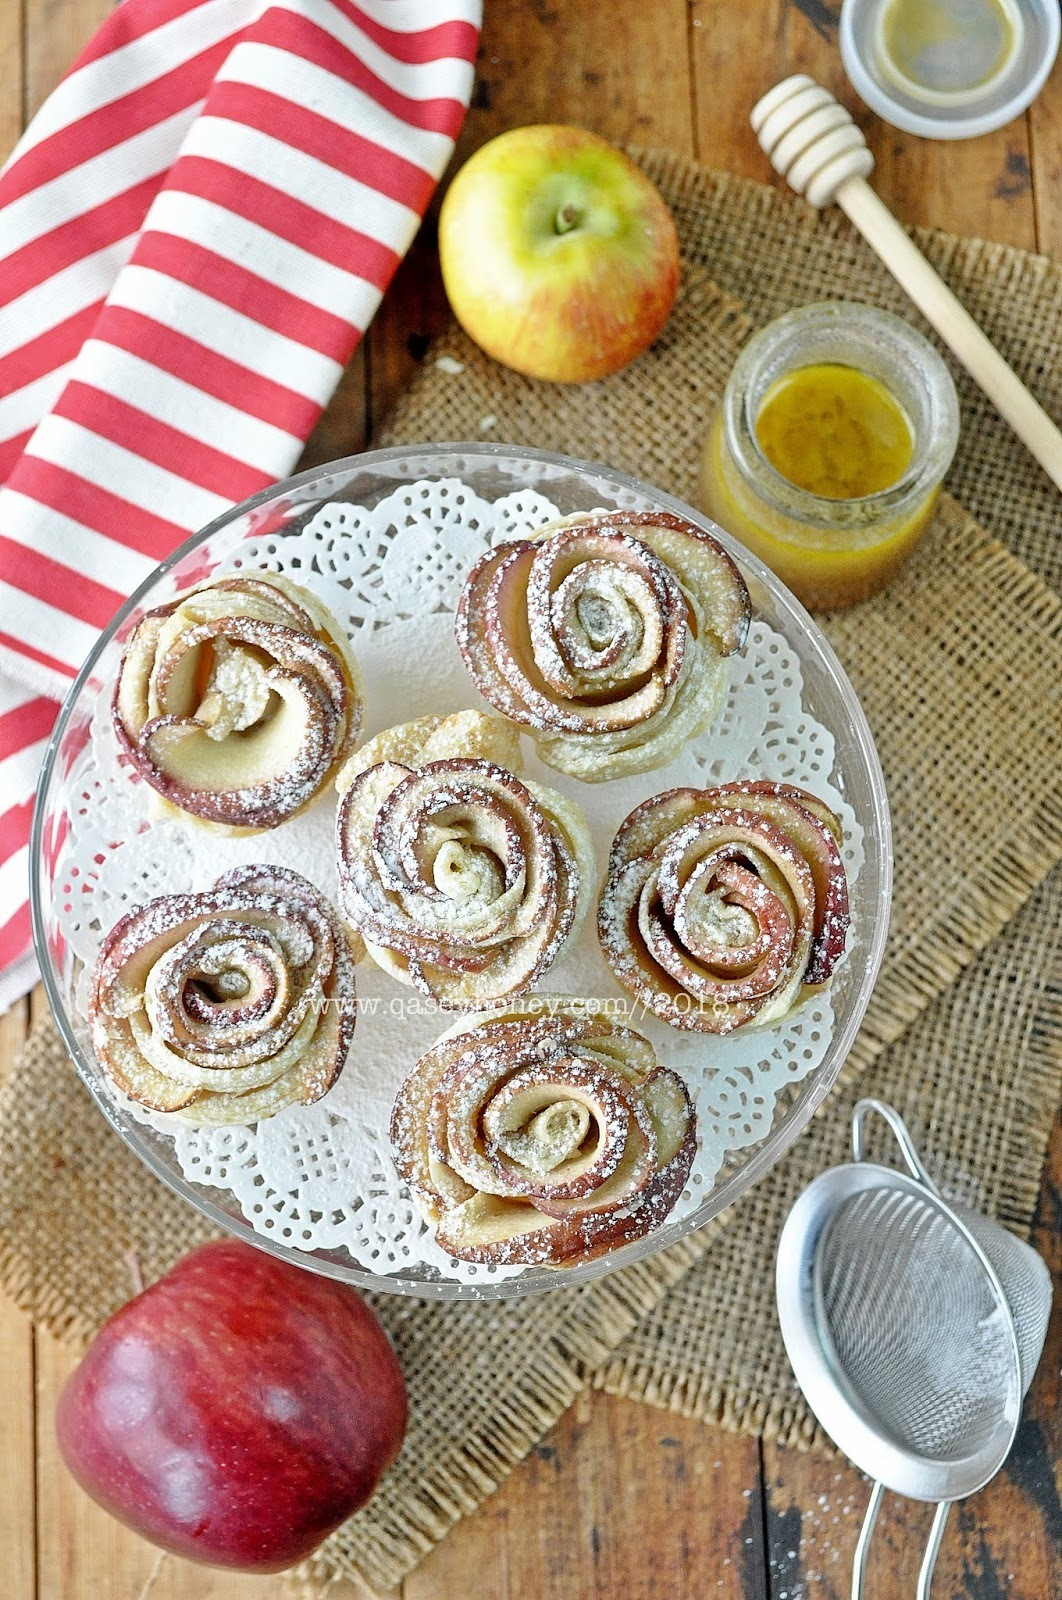 EPAL ROSE PASTRI / APPLE ROSE PUFF PASTRY